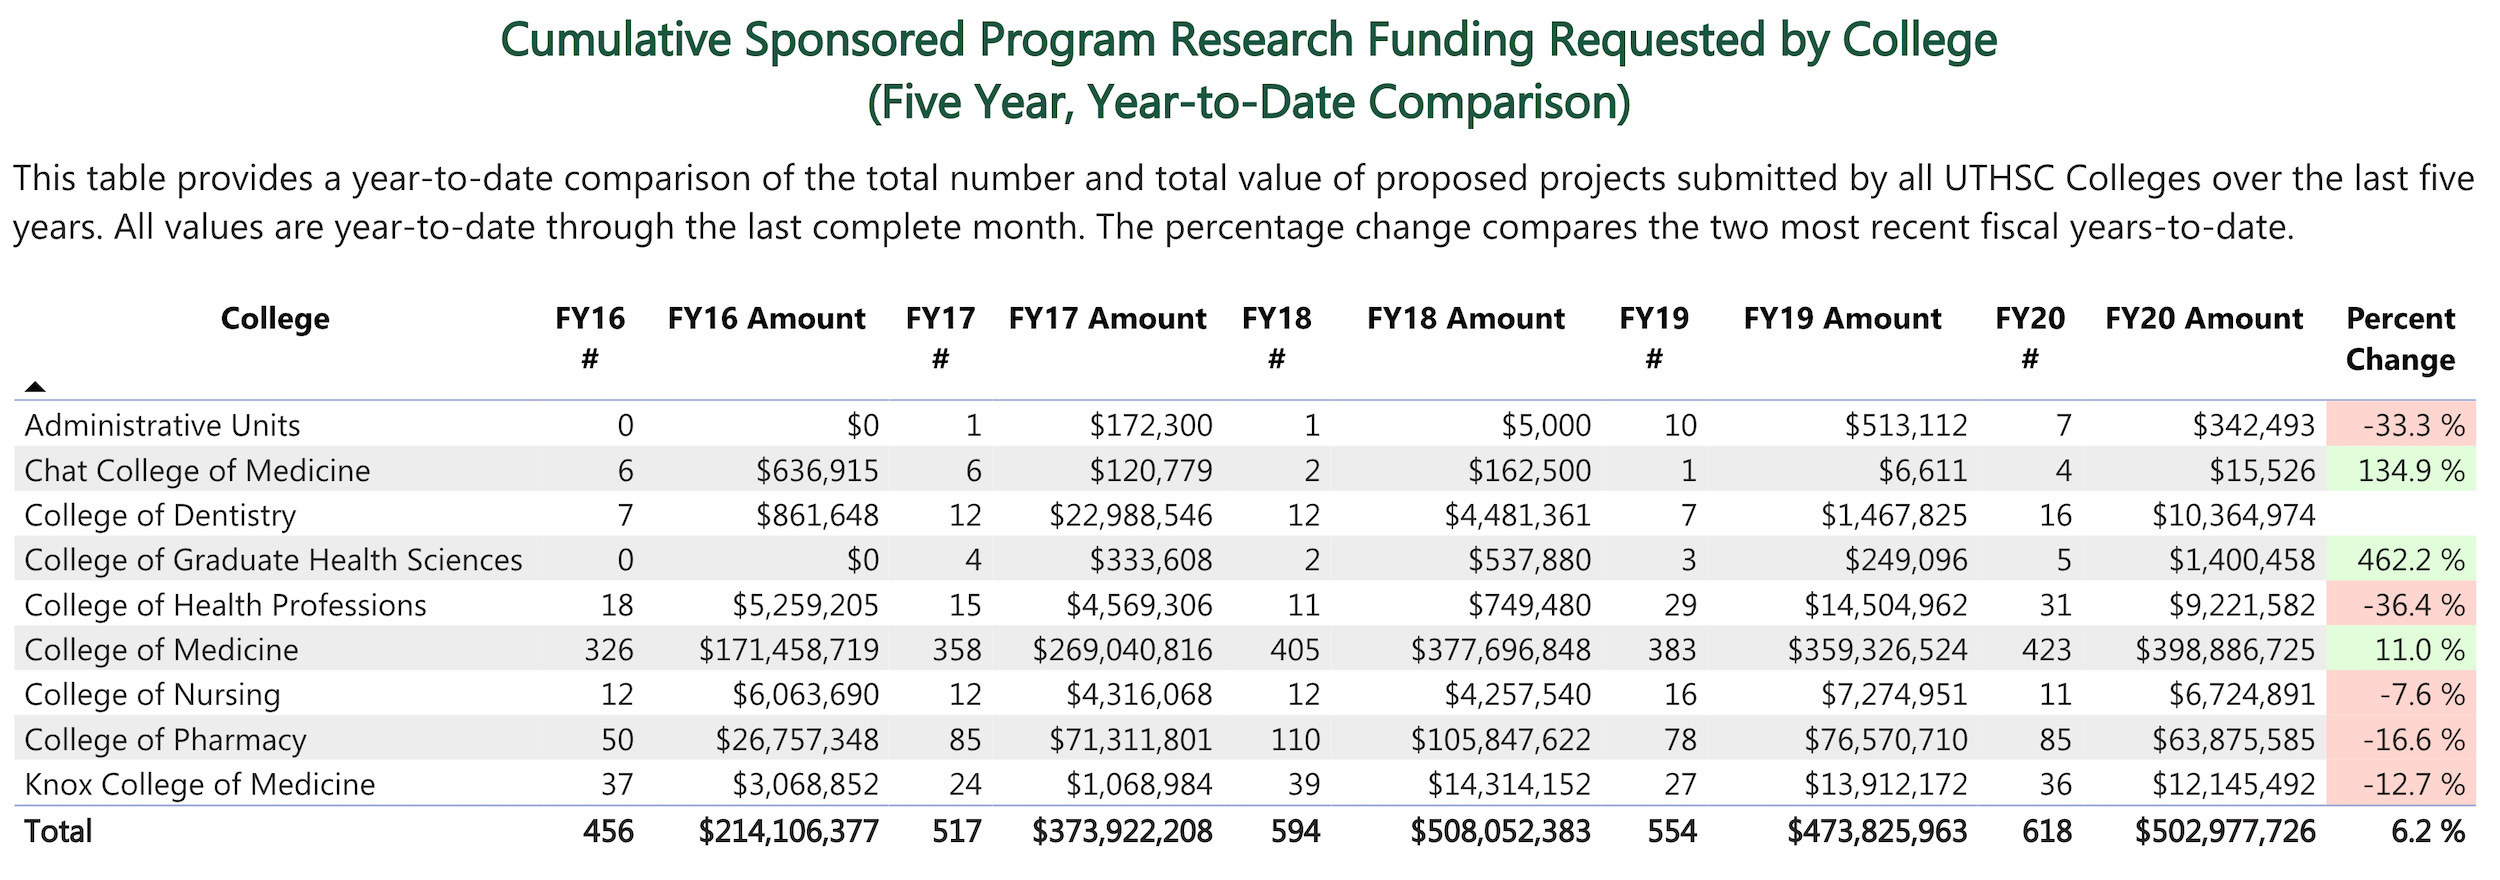 Cumulative Sponsored Programs Research Funding Requested by College